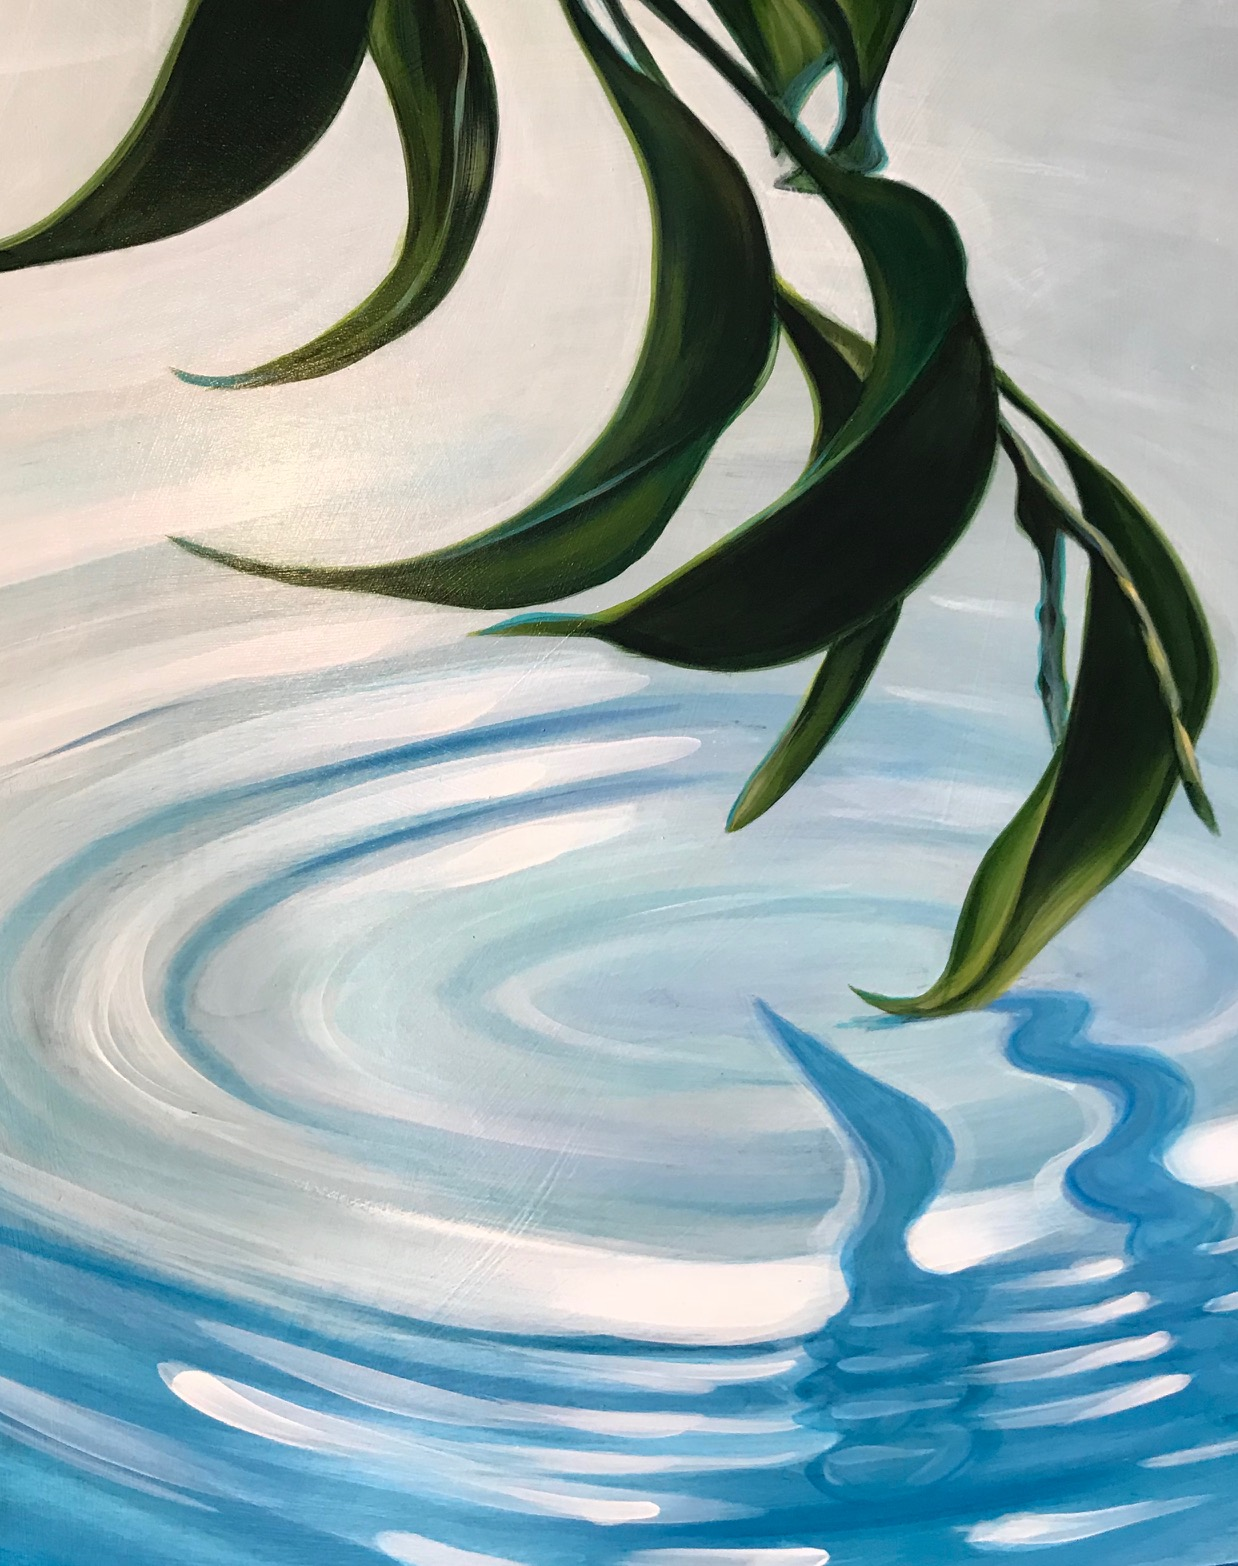 Water Ripple Series